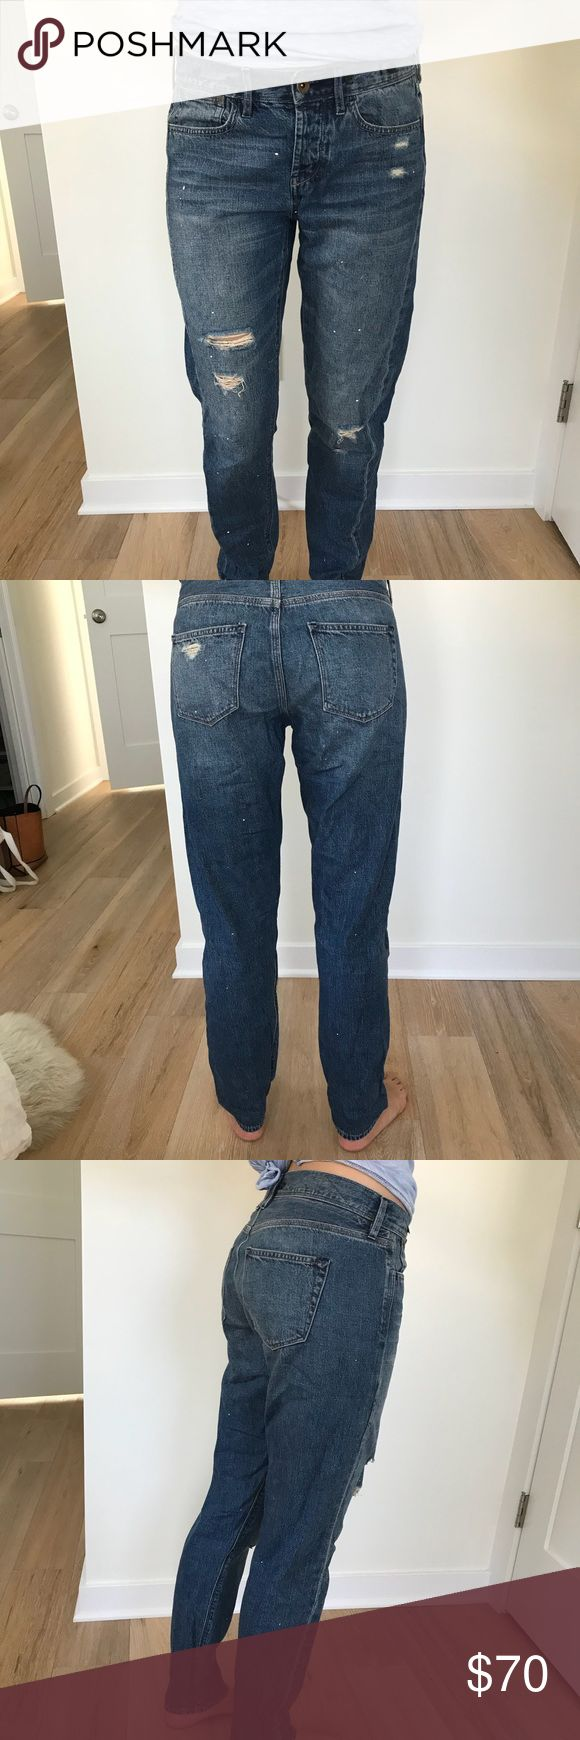 Madewell by Rivet and Thread worker jean Sz 25 Madewell by Rivet and Thread worker jeans. Boyfriend style, size 25. Made to fit loosely! Limited edition and small batch, Rivet & Thread designs are future keepsakes crafted in Los Angeles from top-of-the-line fabrics. Take these jeans, for example: Made of Japanese denim, they are a next-level version of a boyfriend fit. Premium 100% cotton denim from Japan's legendary Kaihara mill. Worn-in indigo wash with a sun-faded feel; hand-placed…